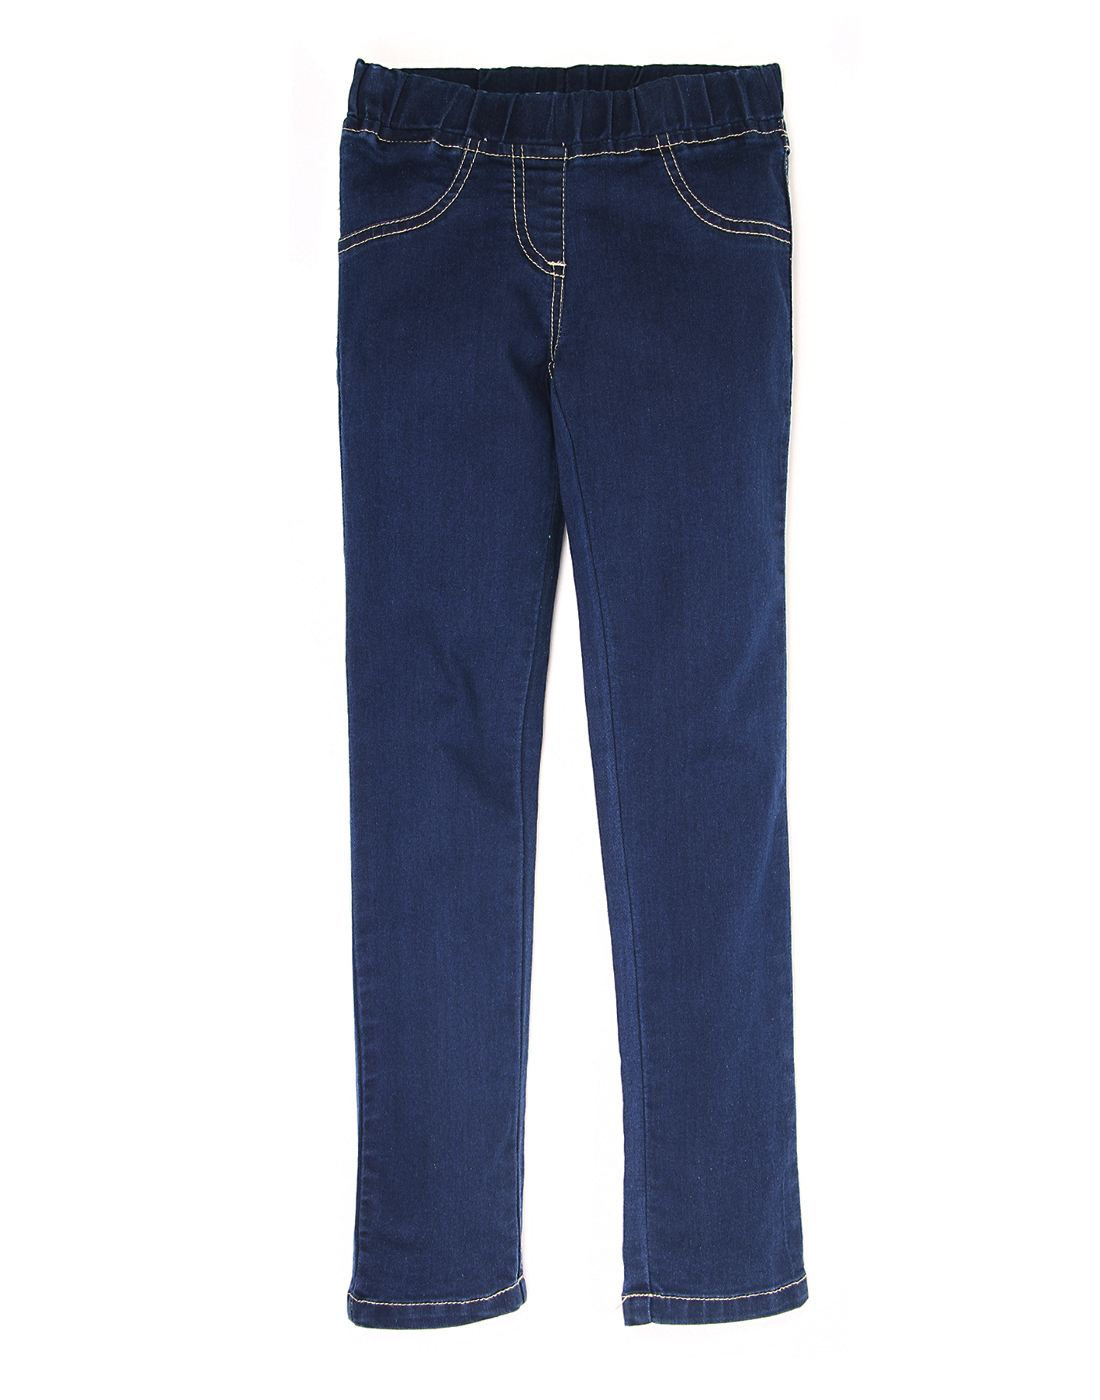 United Colors Of Benetton Girls Dark Blue Trousers